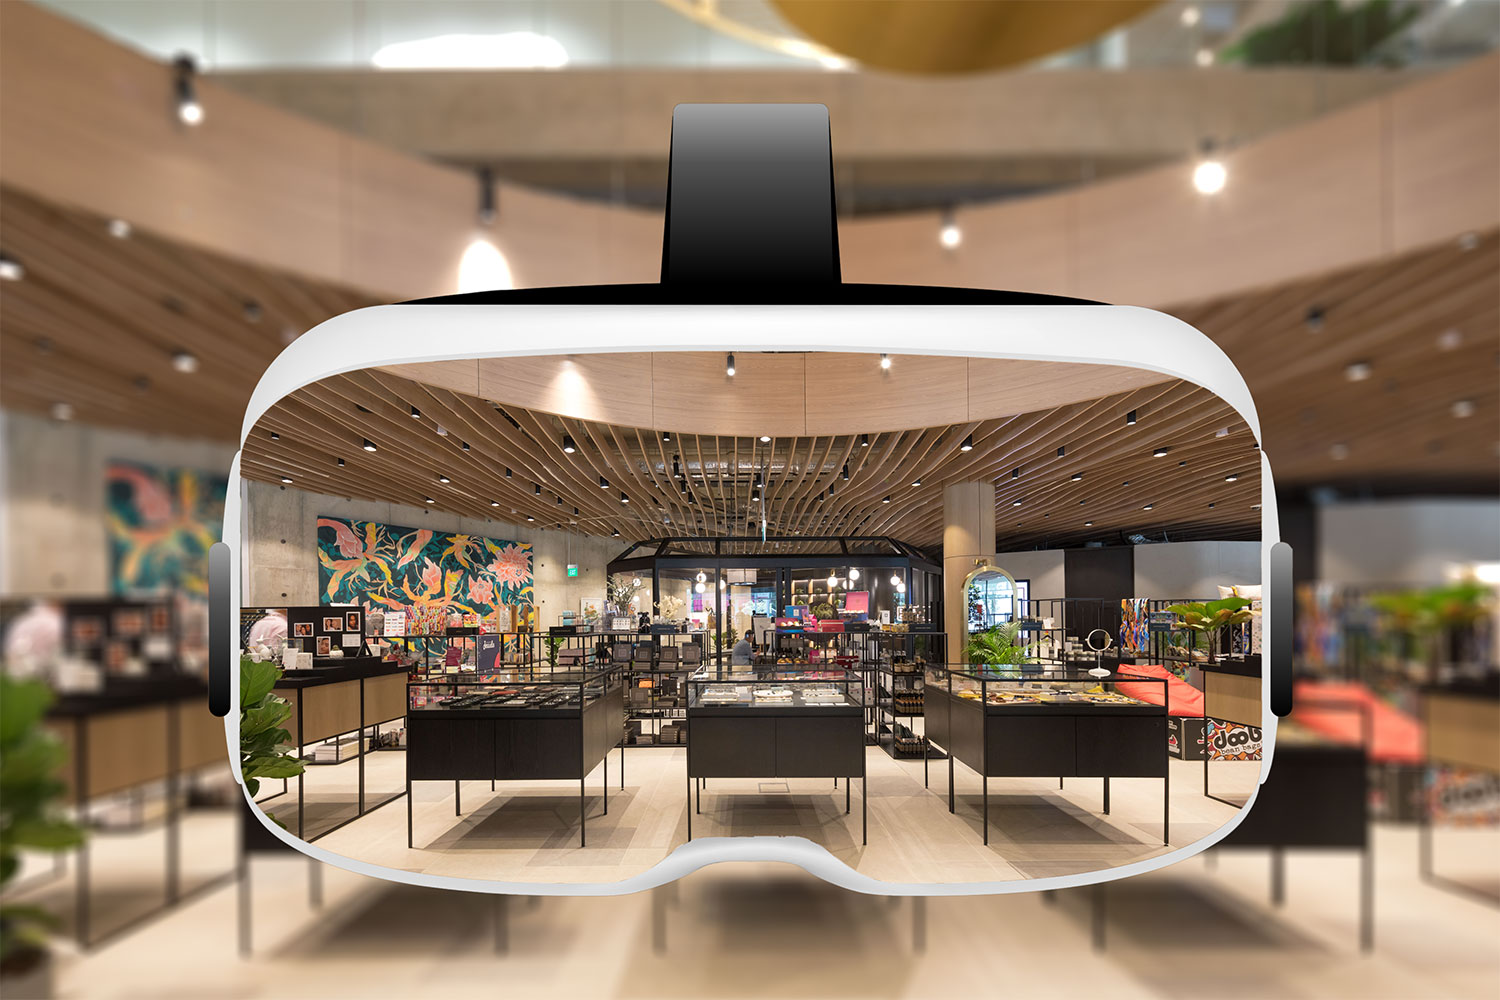 Artist impression of Design Orchard's in-store virtual experience